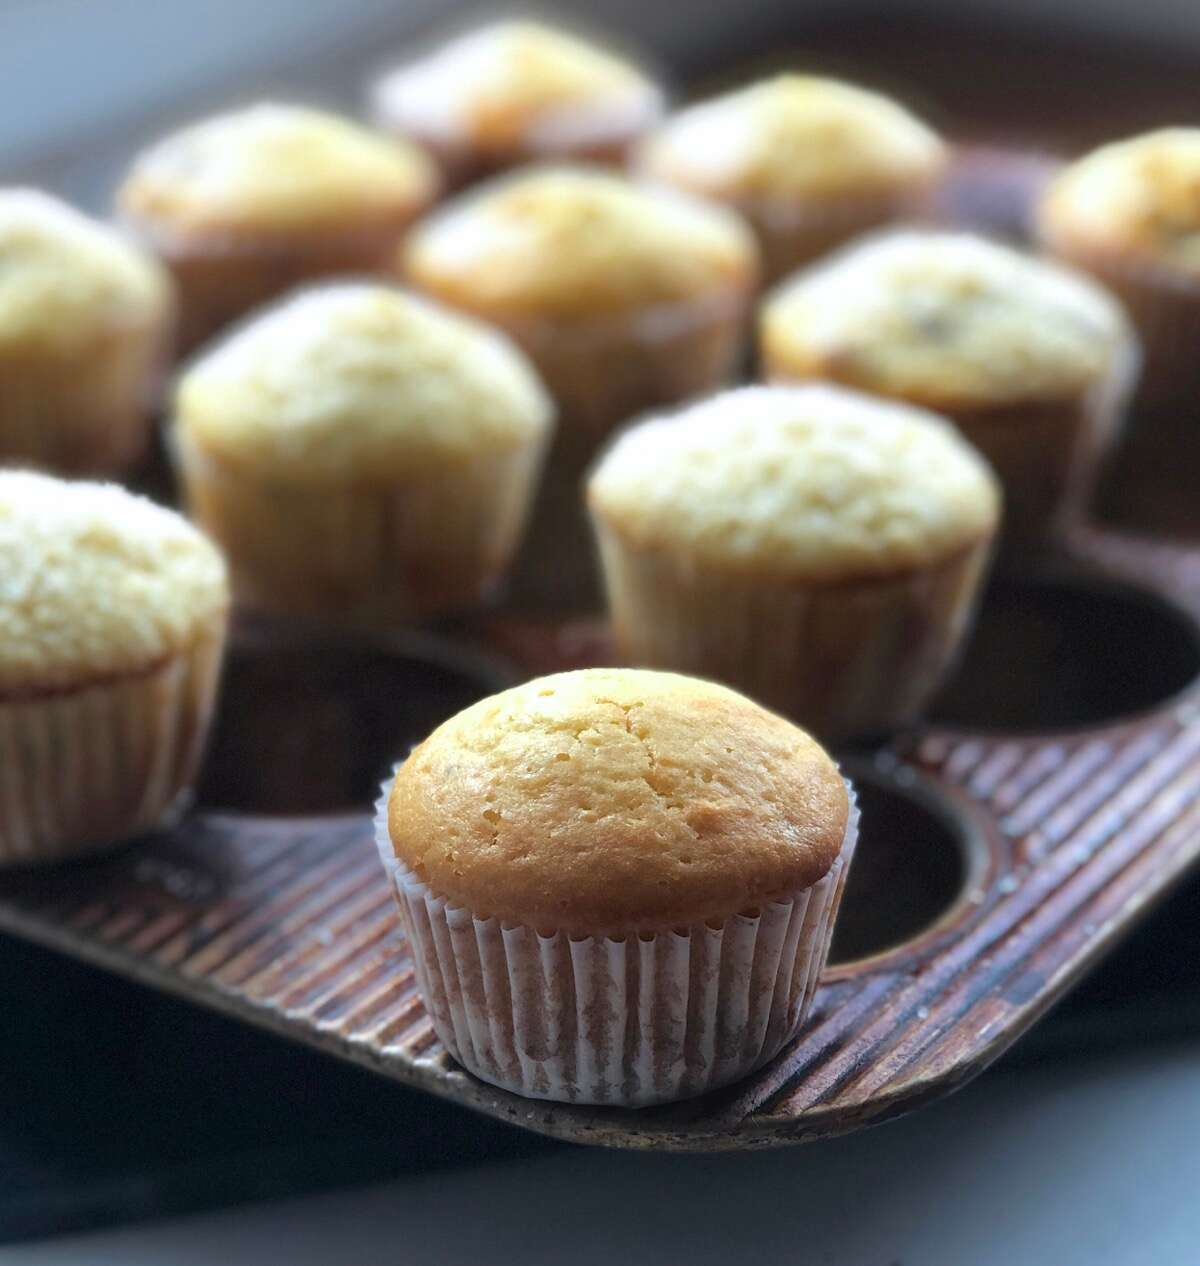 Muffins made with Baking Sugar Alternative cooling atop a muffin pan.